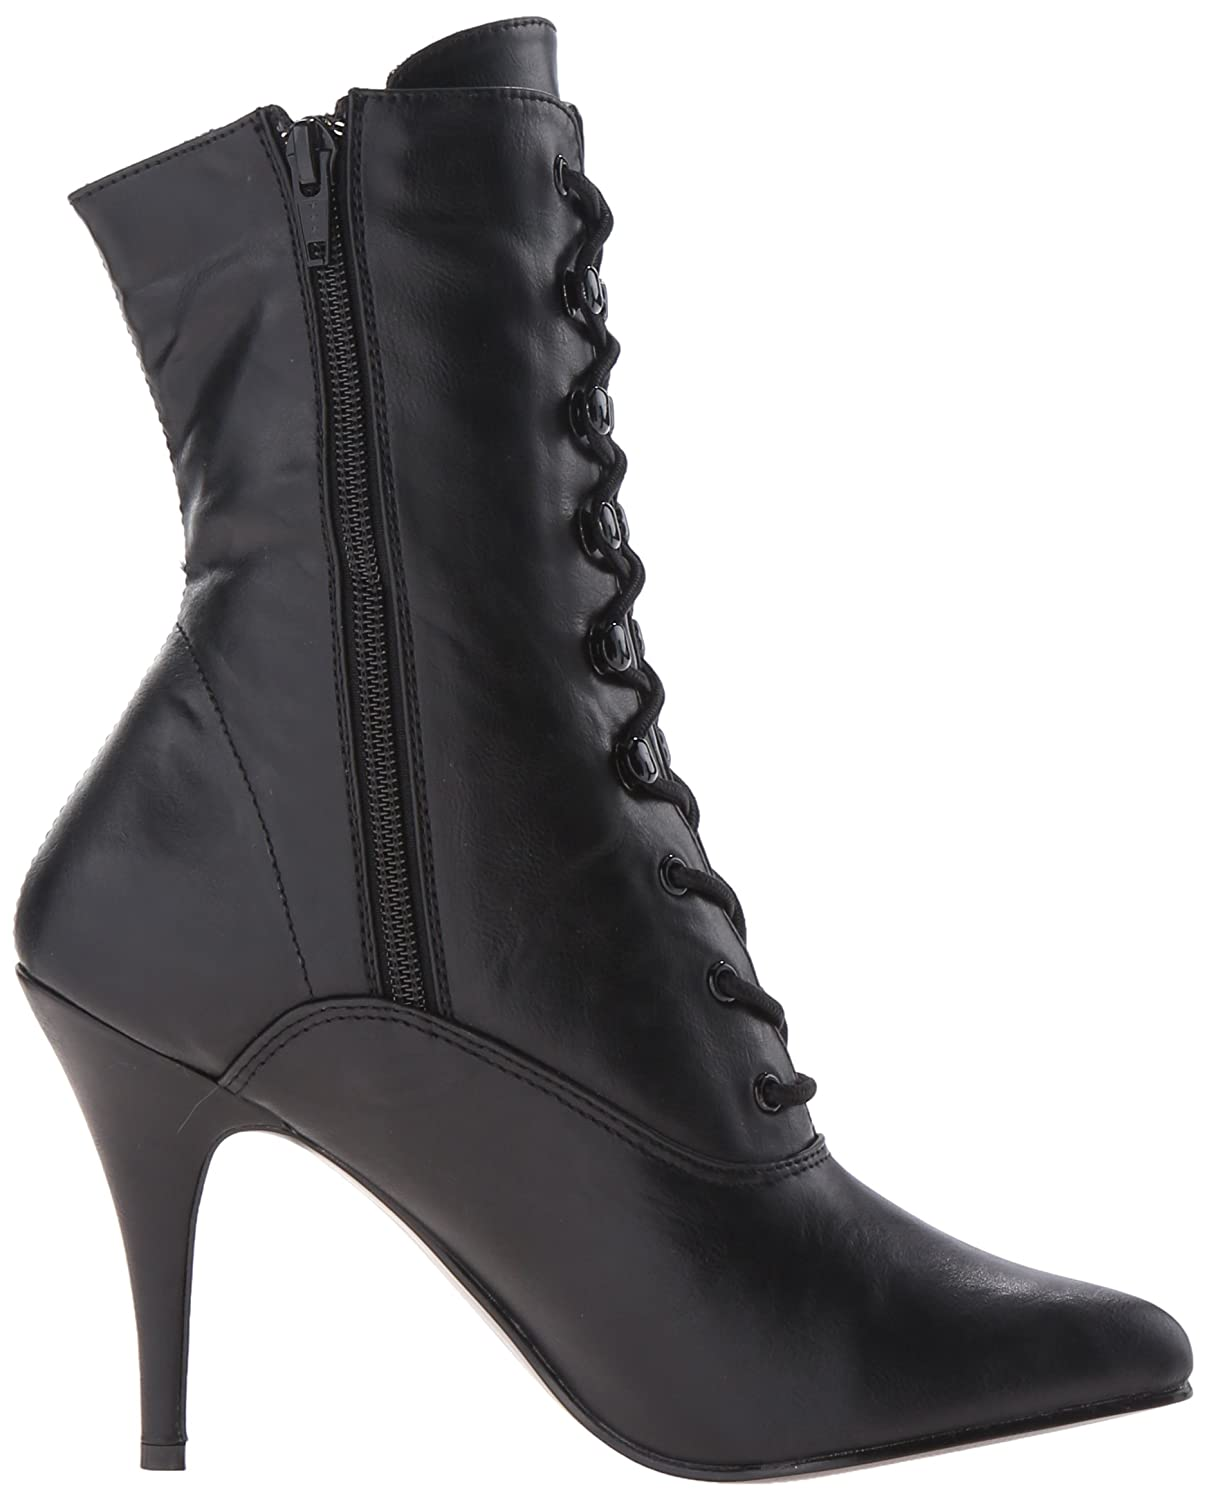 Pleaser Women's VAN1020/BPU US|Black Boot B00SUT07NS 14 B(M) US|Black VAN1020/BPU Faux Leather e7b063